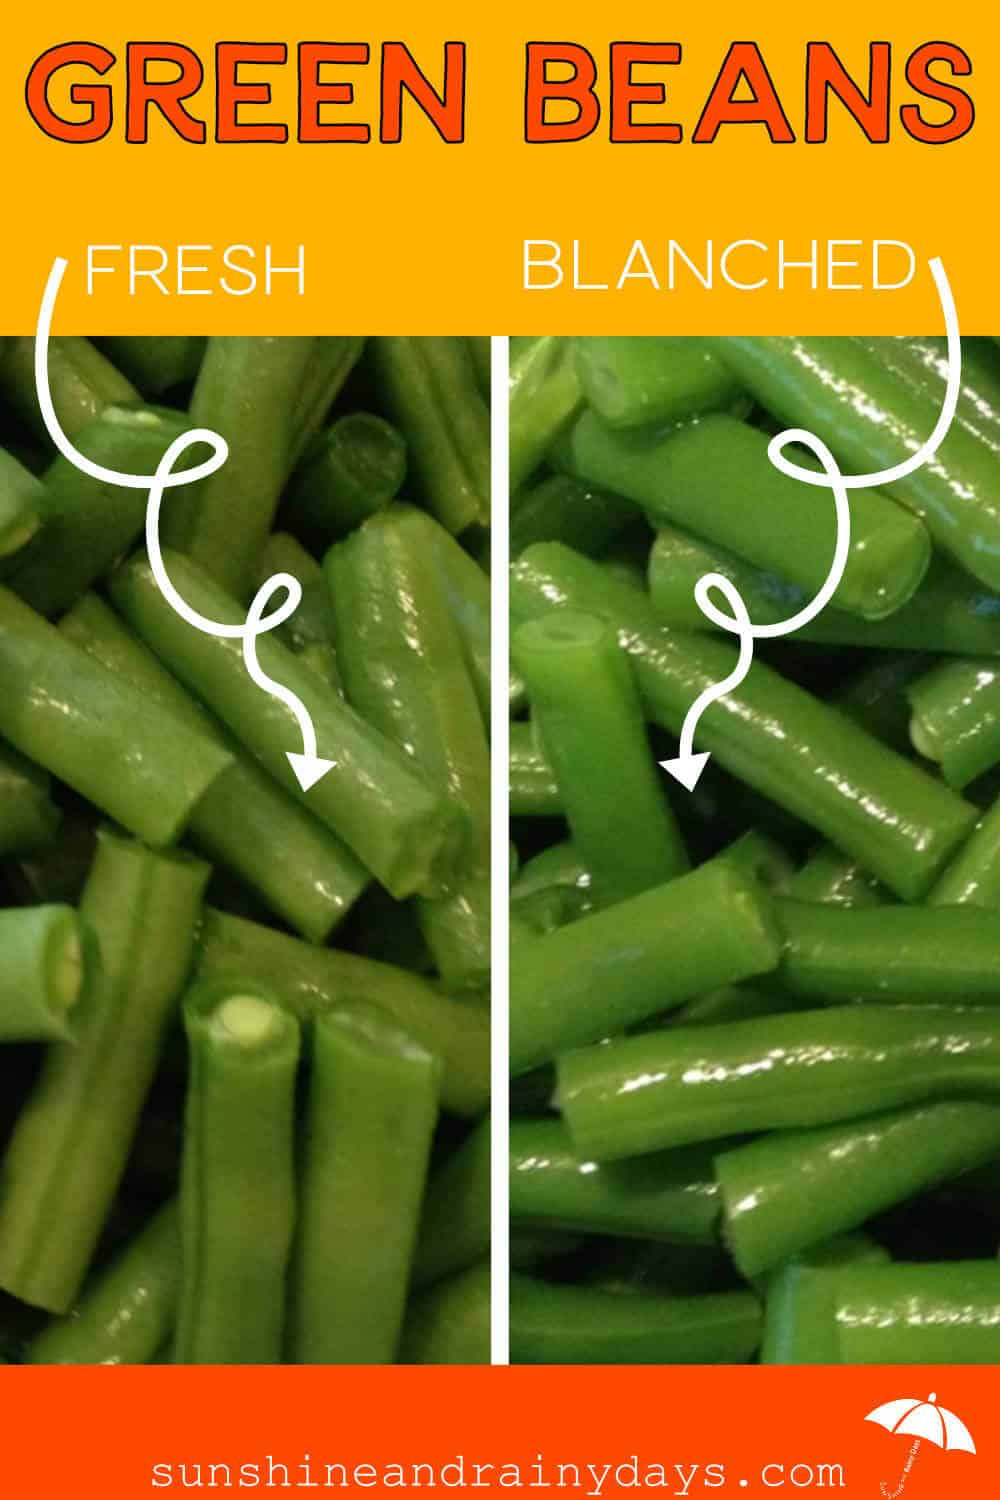 Blanch Your Green Beans To Freeze Them